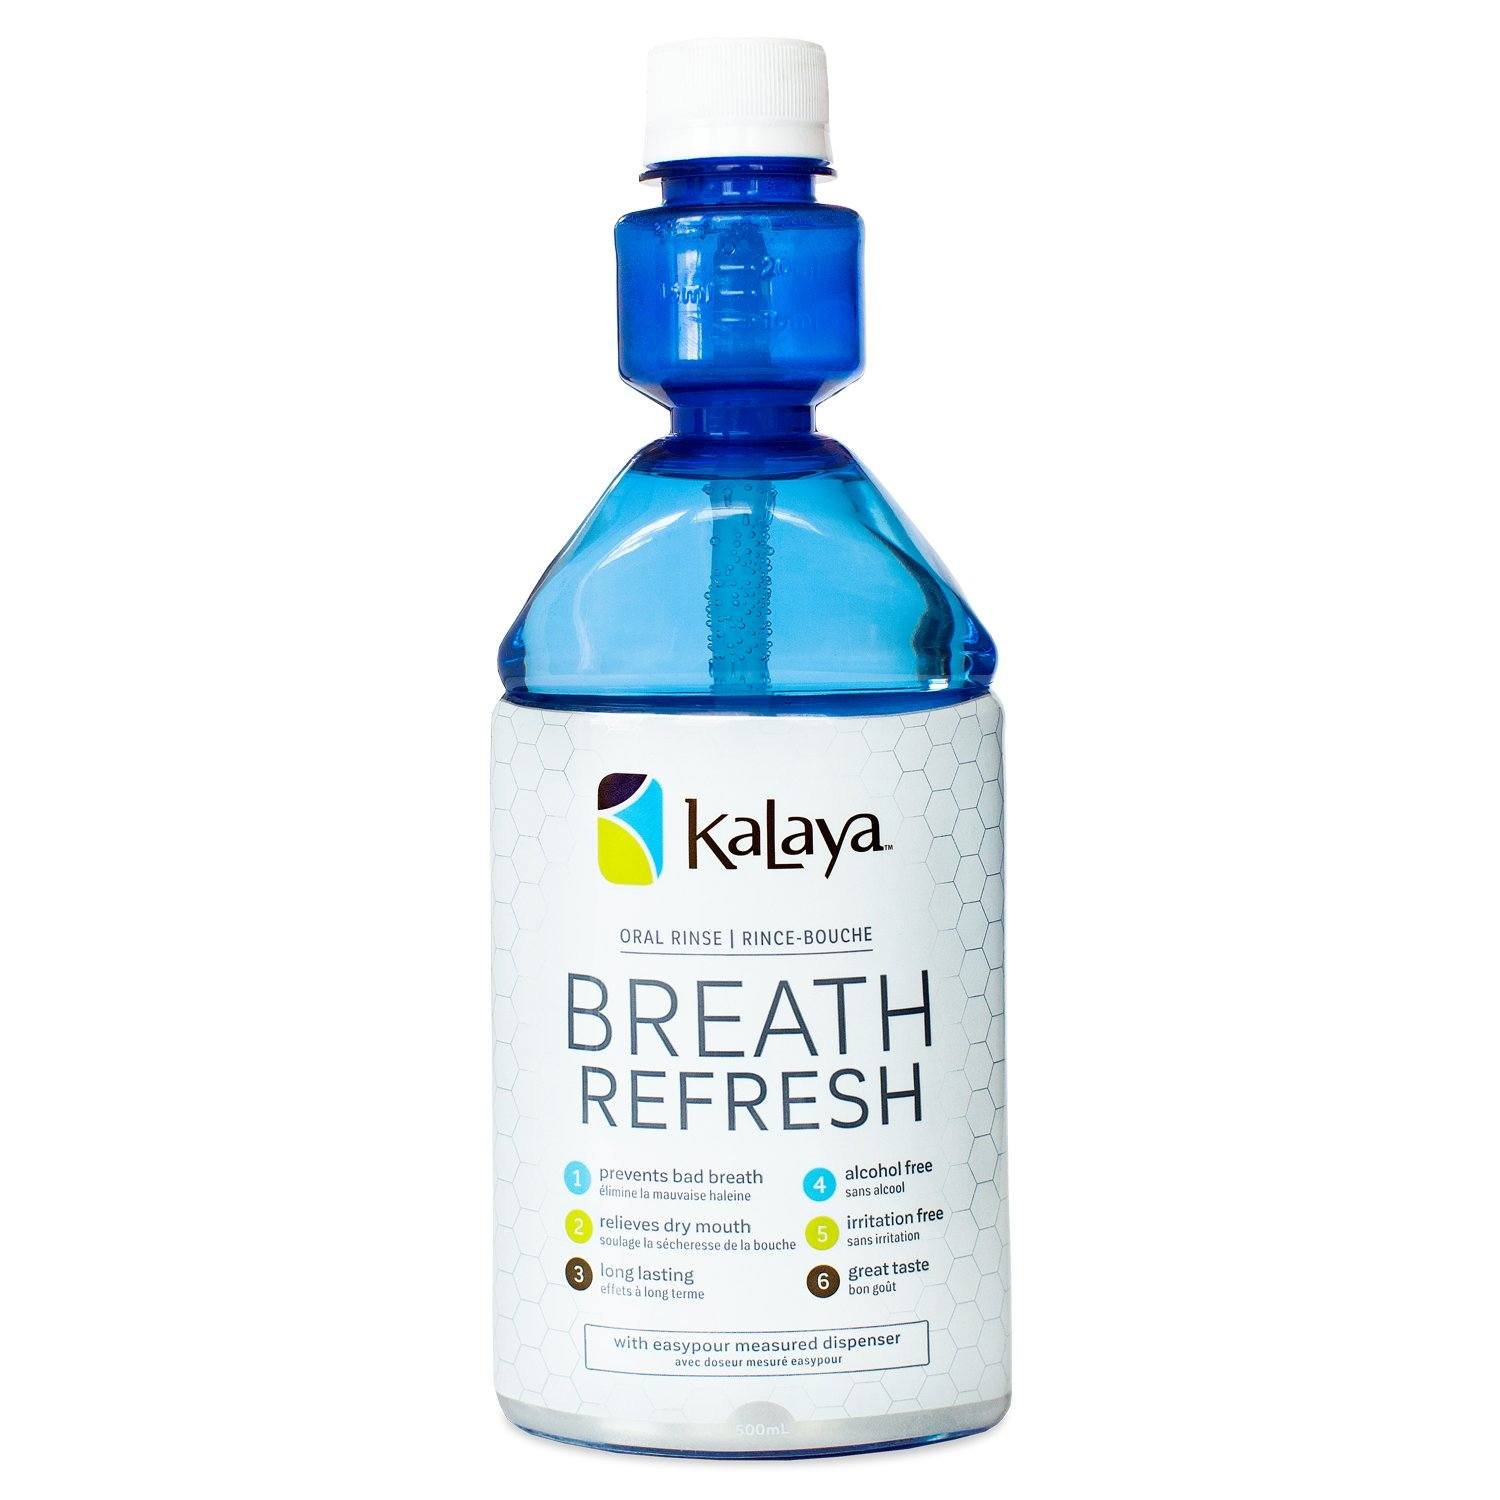 Personal Care - Kalaya - Breath Refresh Oral Rinse, 500ml